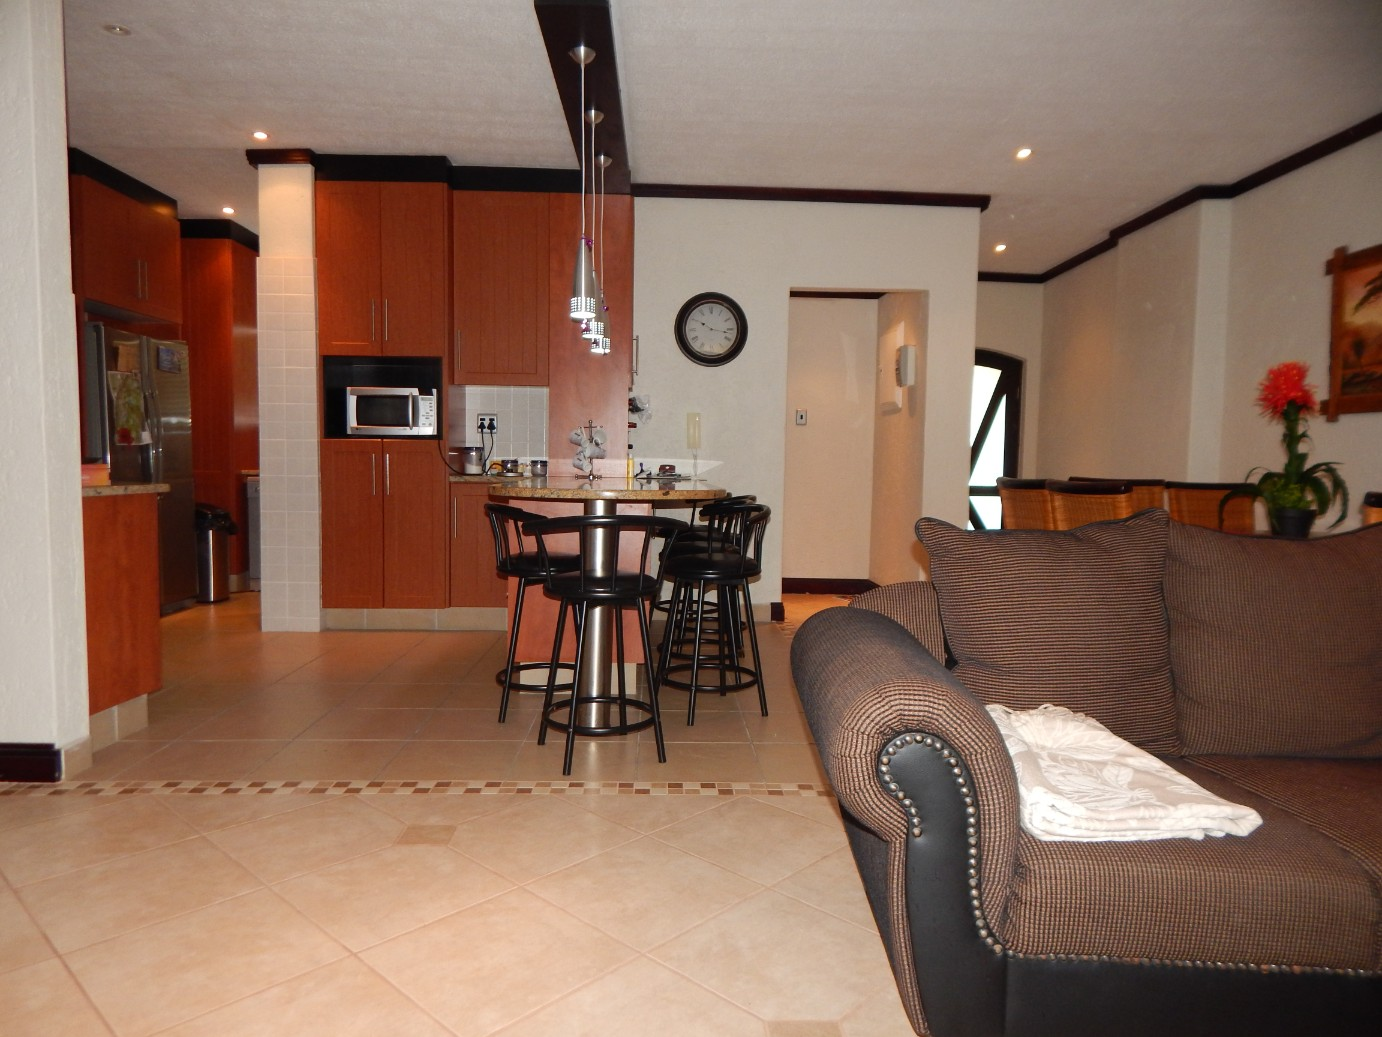 3 Bedroom Apartment for sale in Diaz Beach ENT0043723 : photo#4